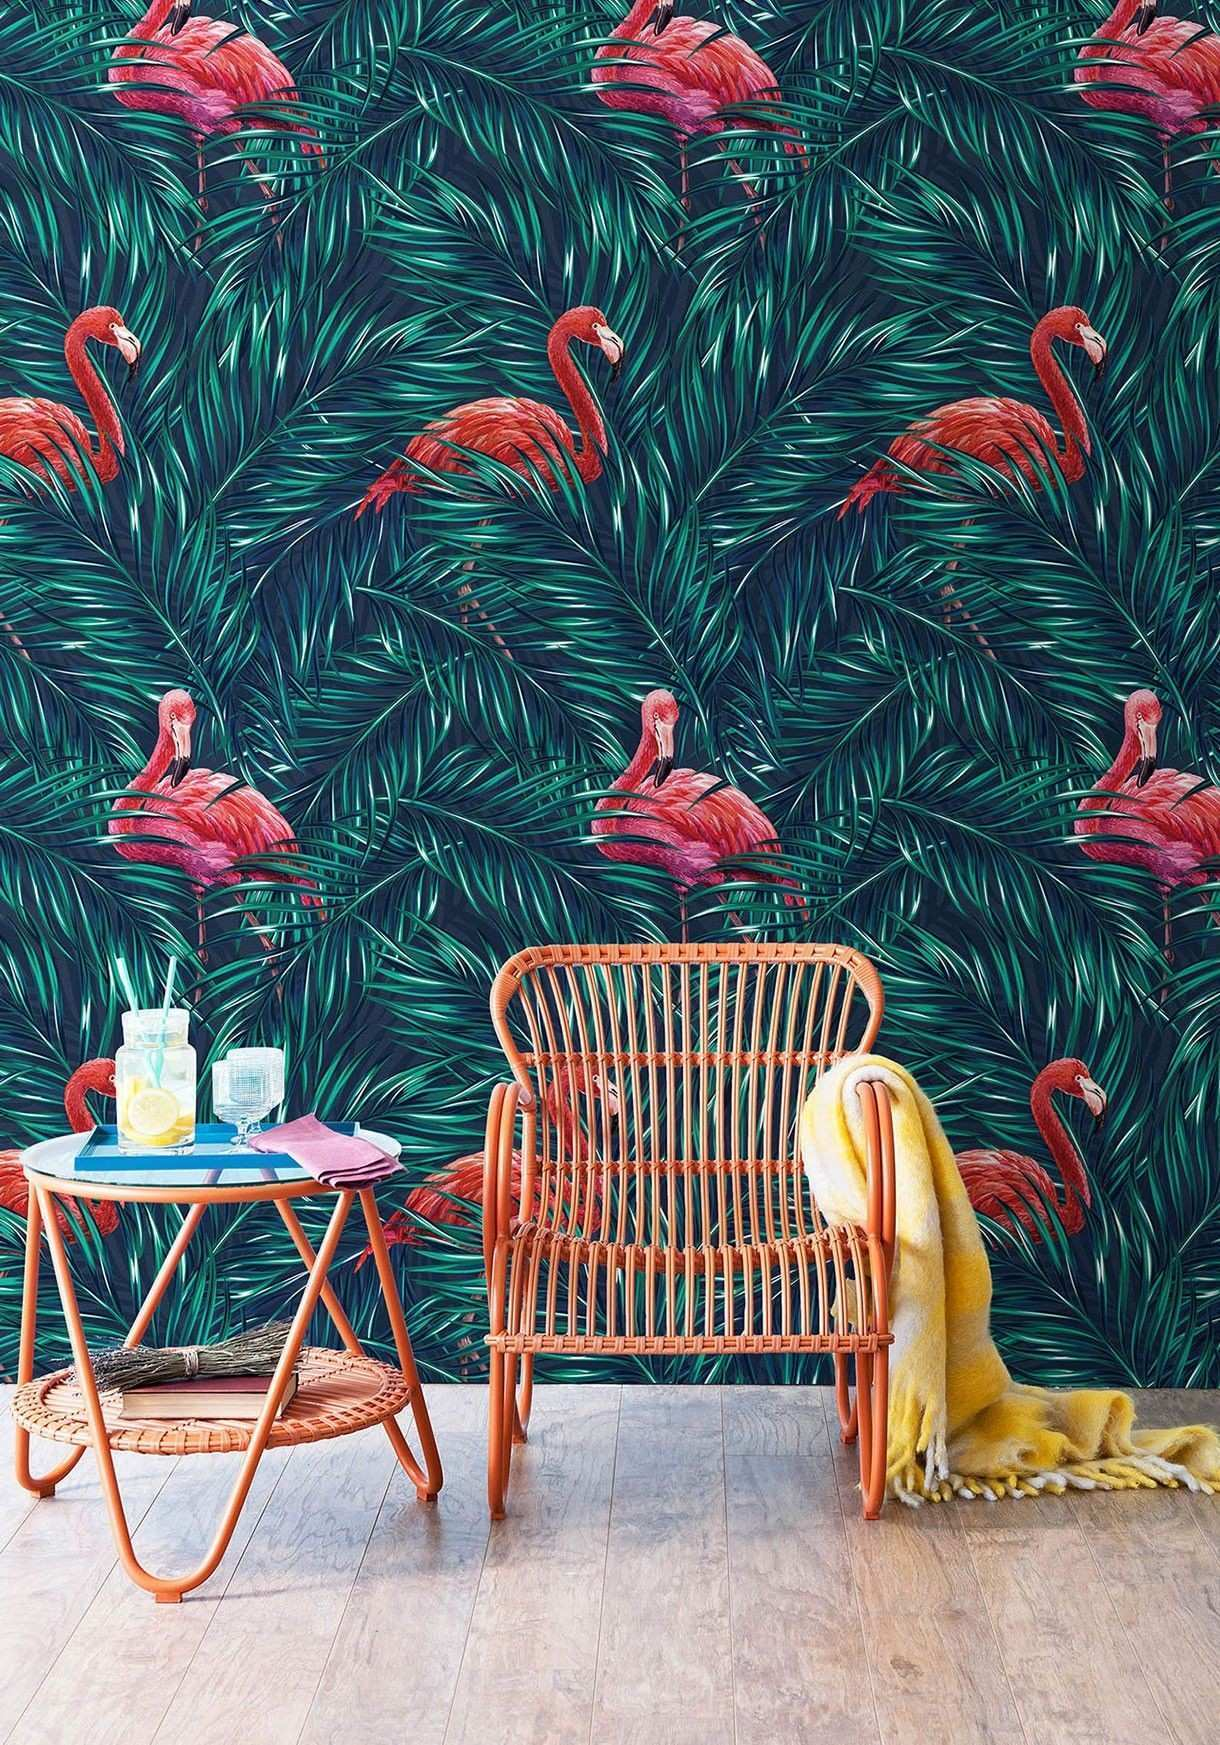 Tropical Pink Flamingo Wallpaper from Milton & King